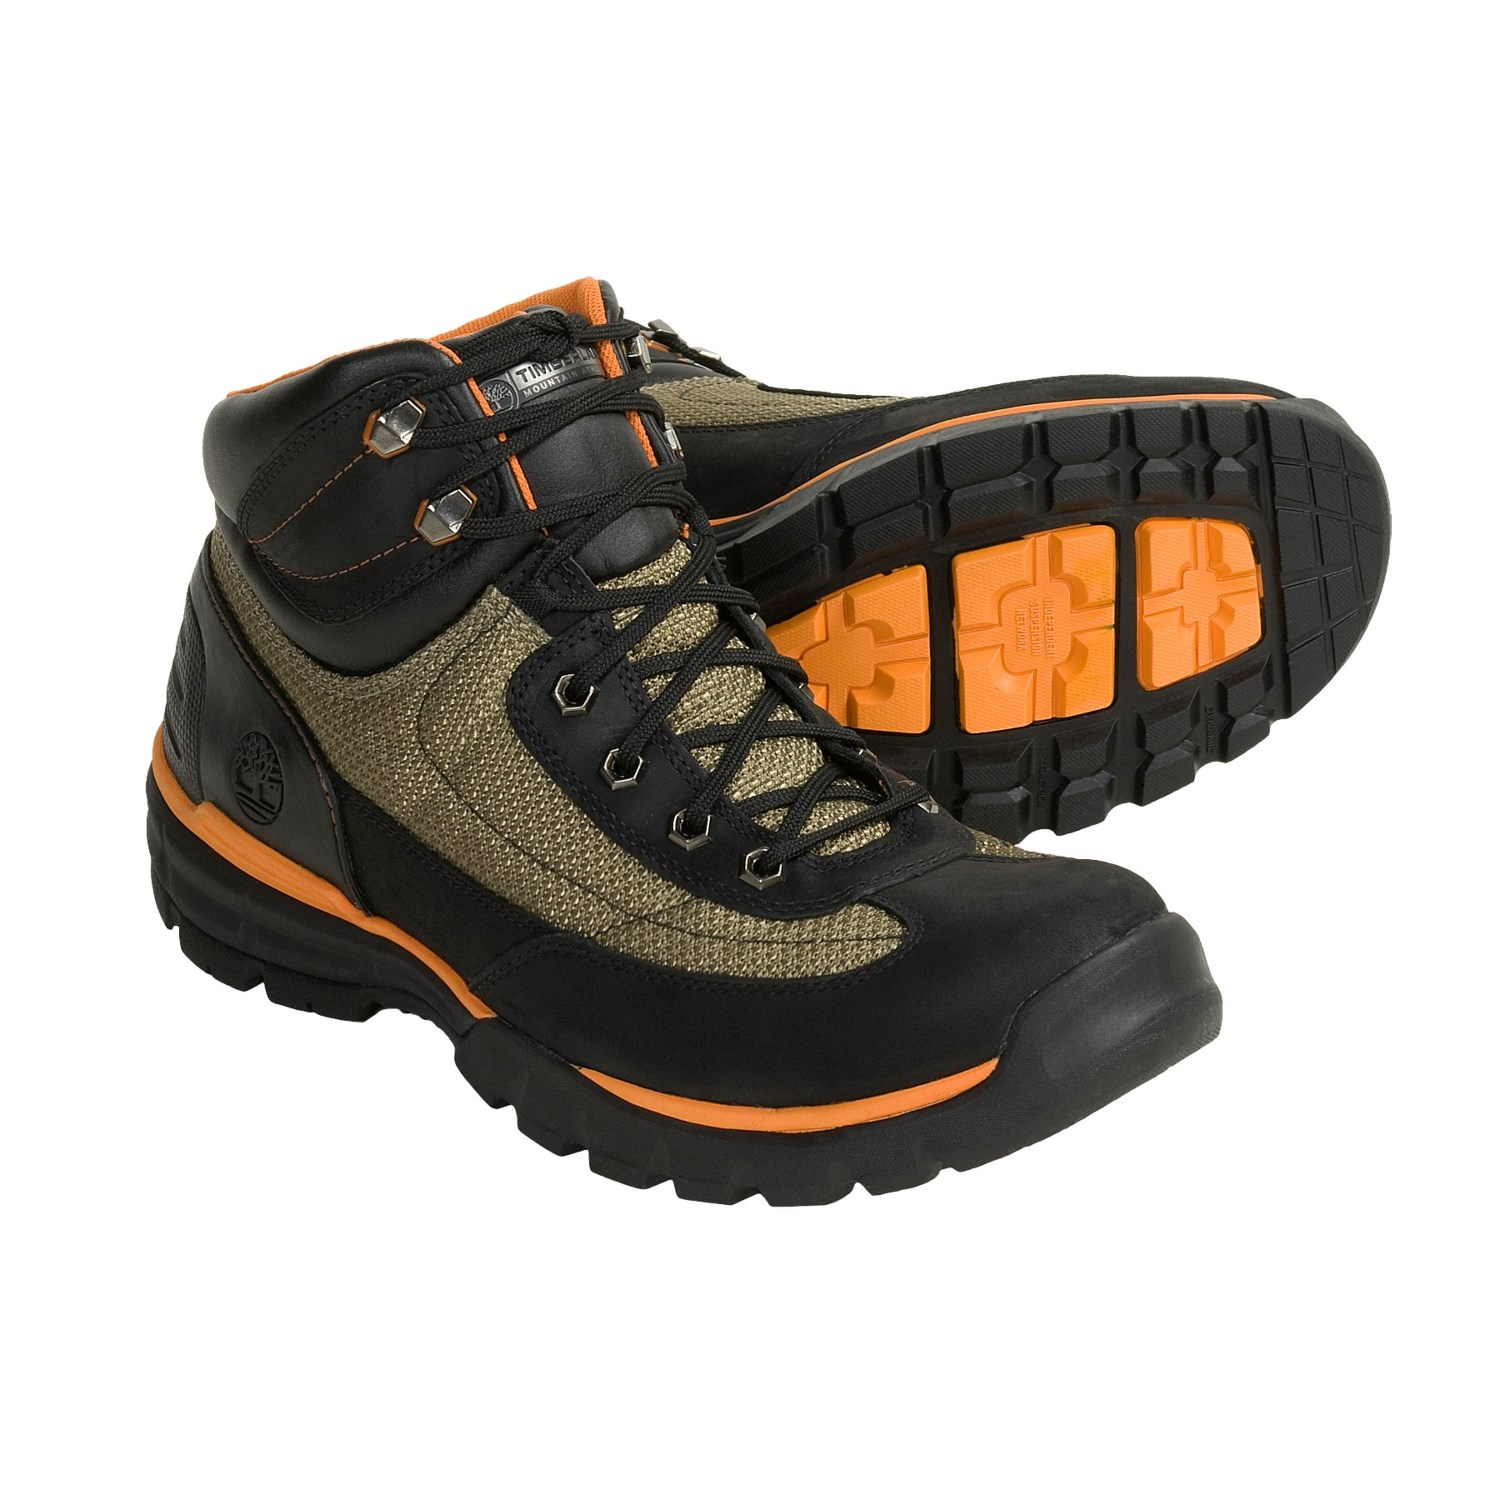 I Bought Some Timberland Boots Similar To These